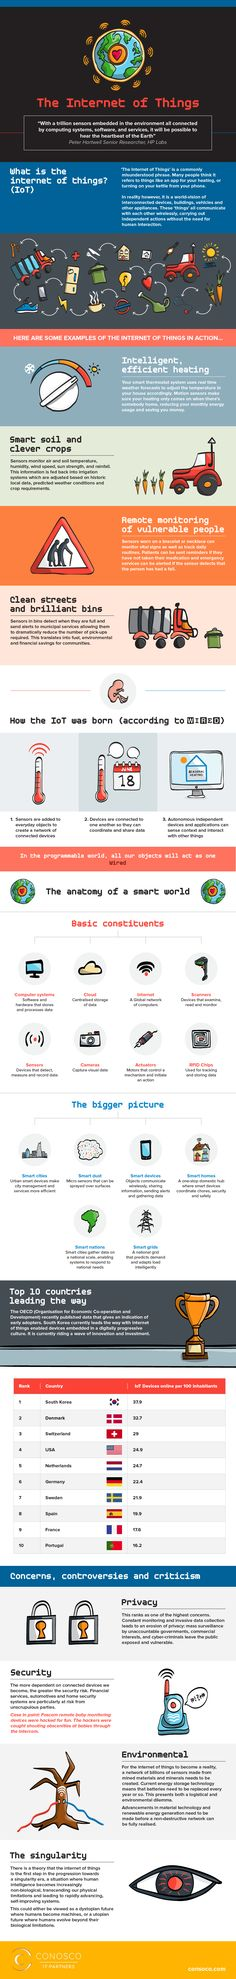 Everything You Need to Know about The Internet of Things - Imgur